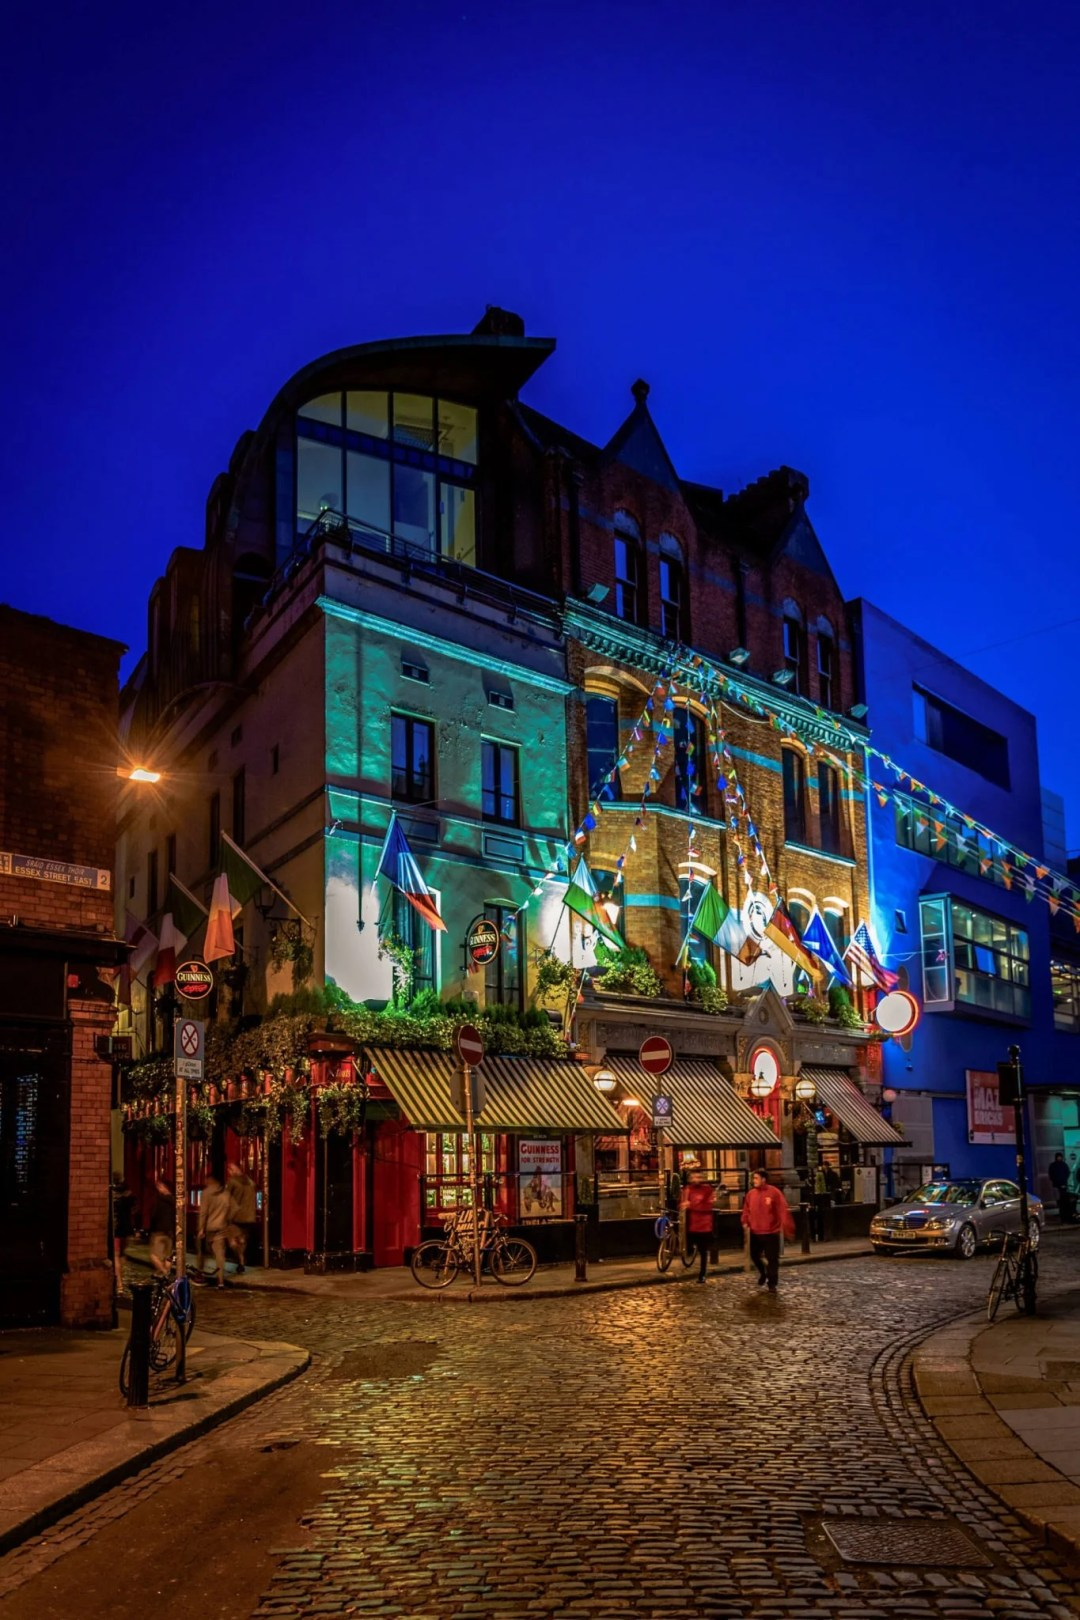 2 Days in Dublin Itinerary: night view of the temple bar district in central Dublin, Ireland